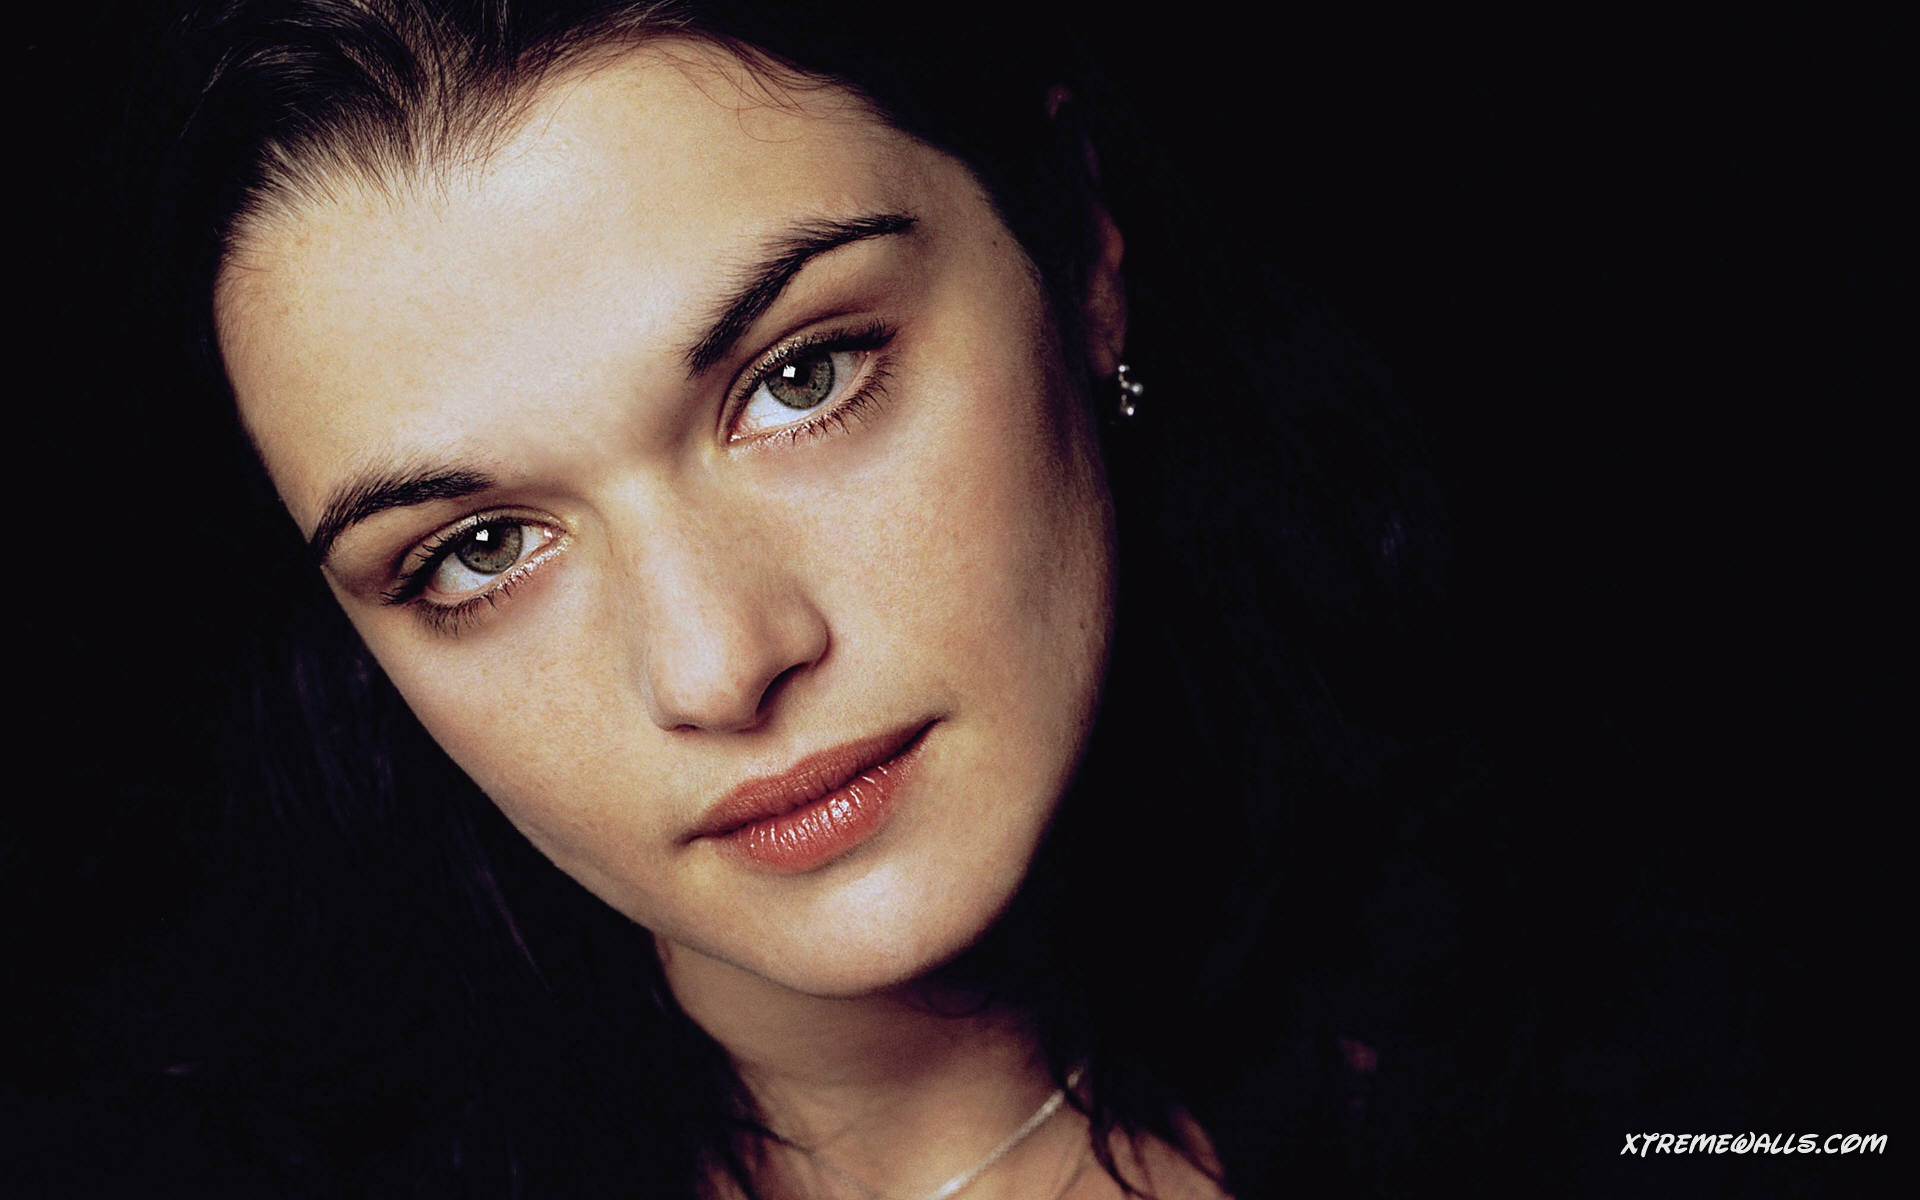 Rachel Weisz Wallpapers High Resolution and Quality Download